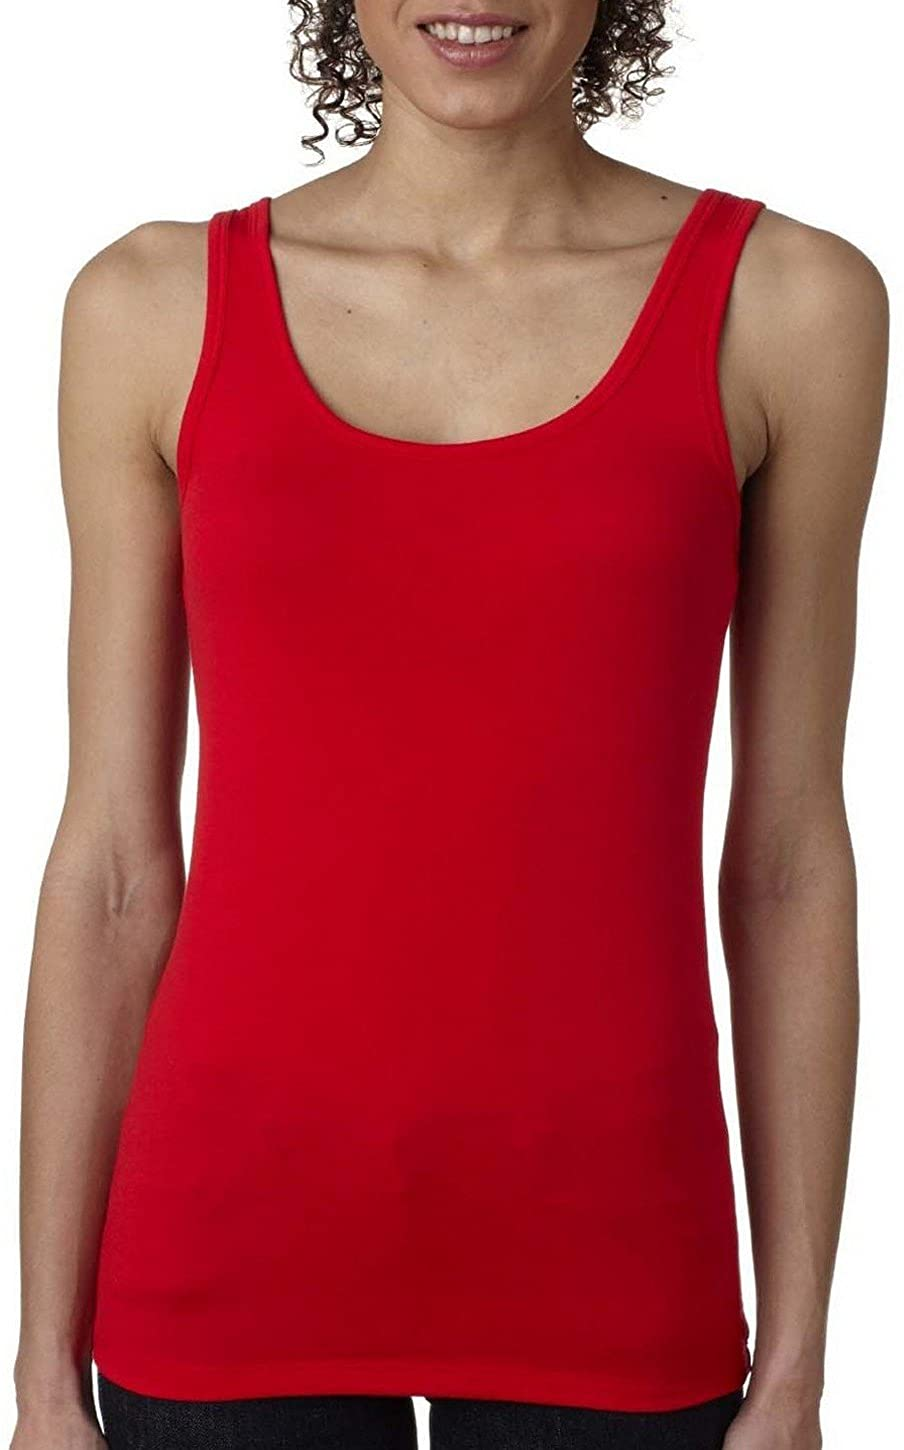 Next Level 3533 Jersey Tank Top Red Small